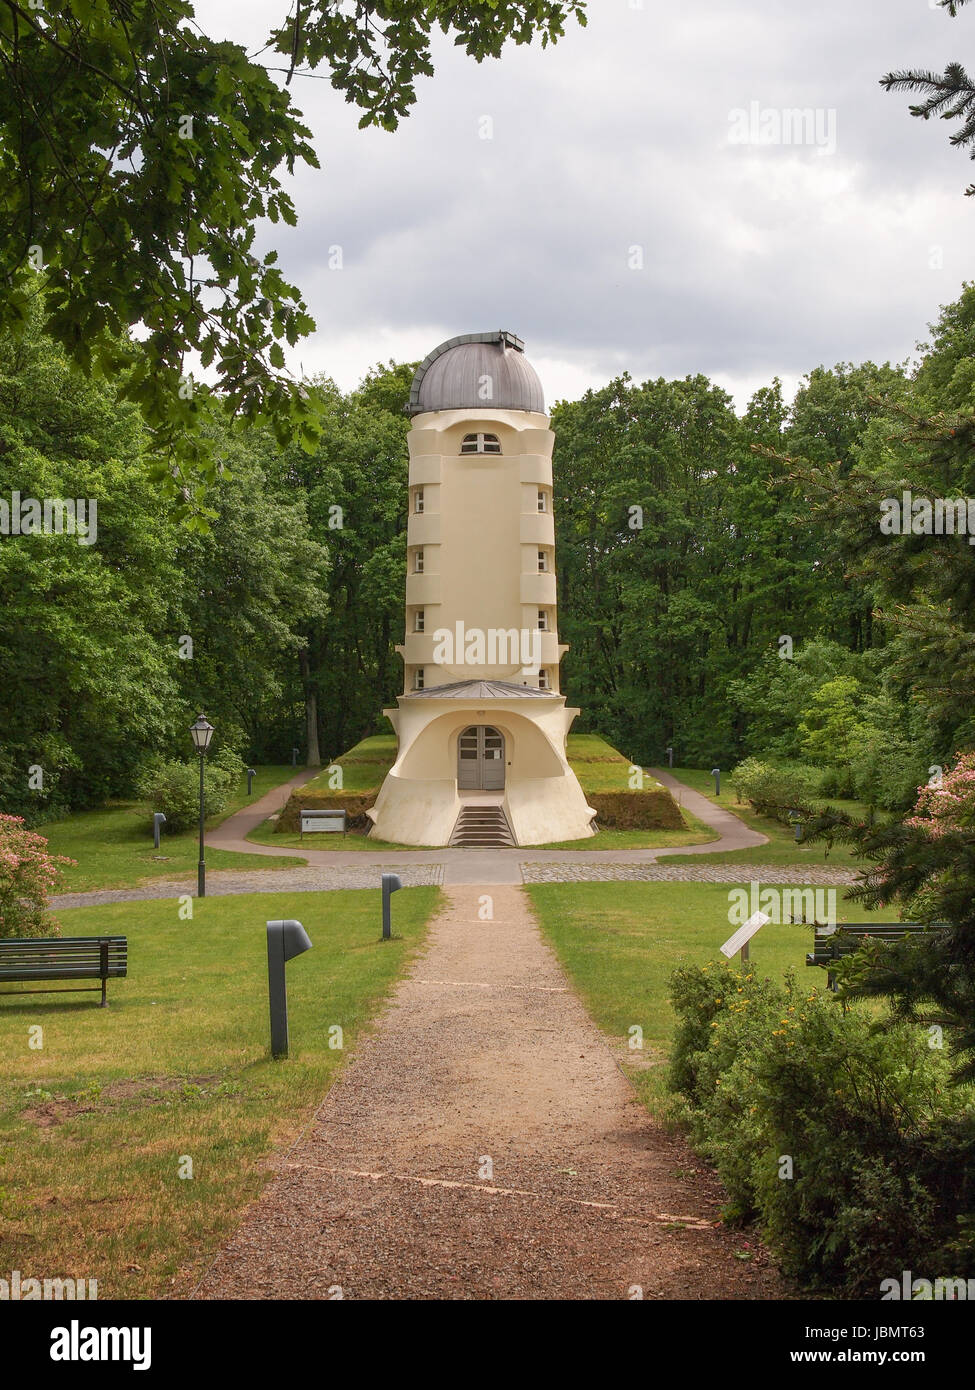 POTSDAM, GERMANY - MAY 10, 2014: The Einstein Turm astrophysical observatory was designed by architect Erich Mendelsohn - Stock Image